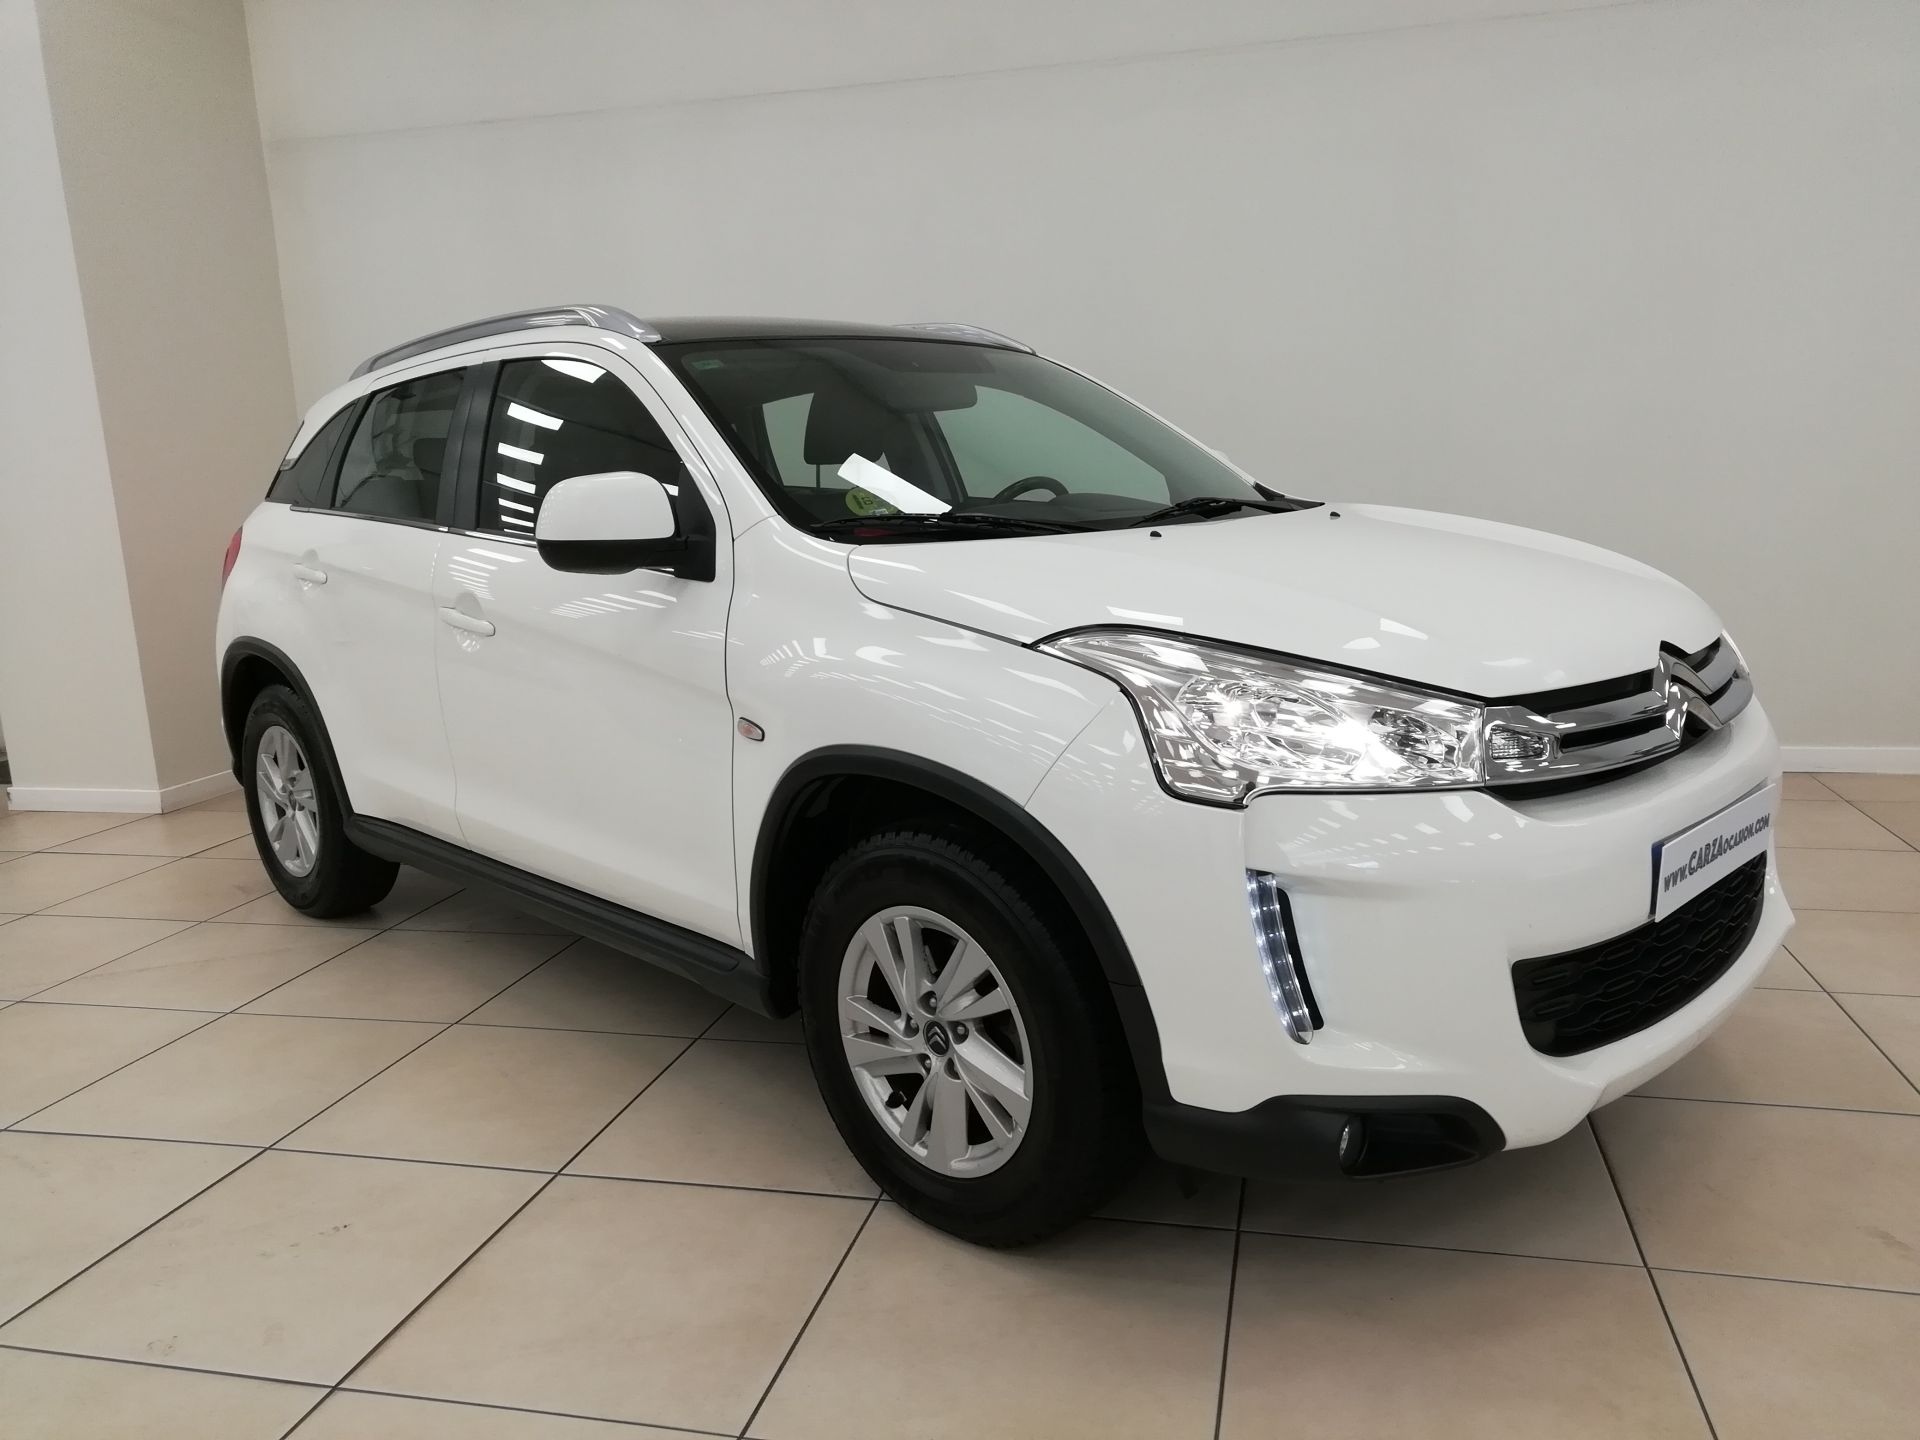 Citroen C4 Aircross 1.6 HDi 115cv Seduction nuevo Zaragoza